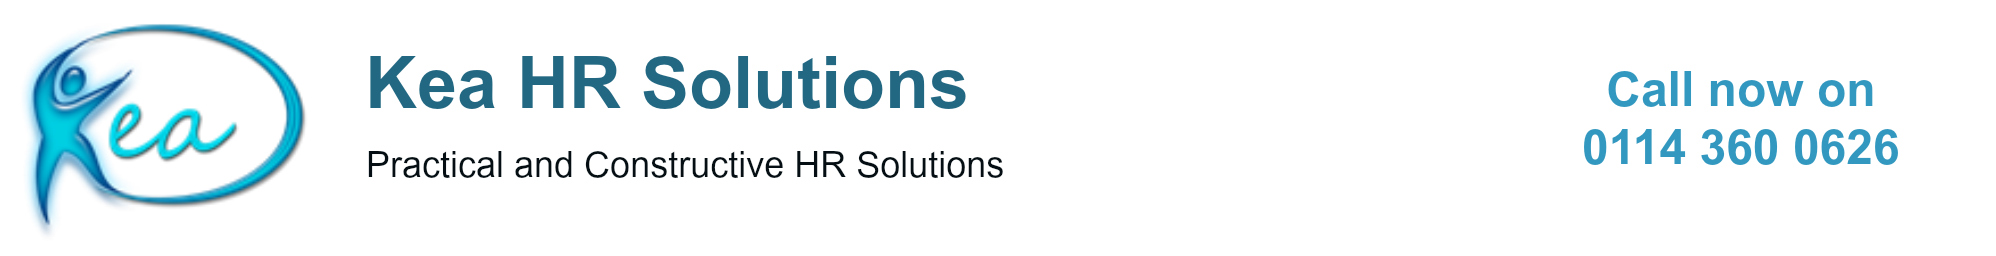 Kea HR Solutions